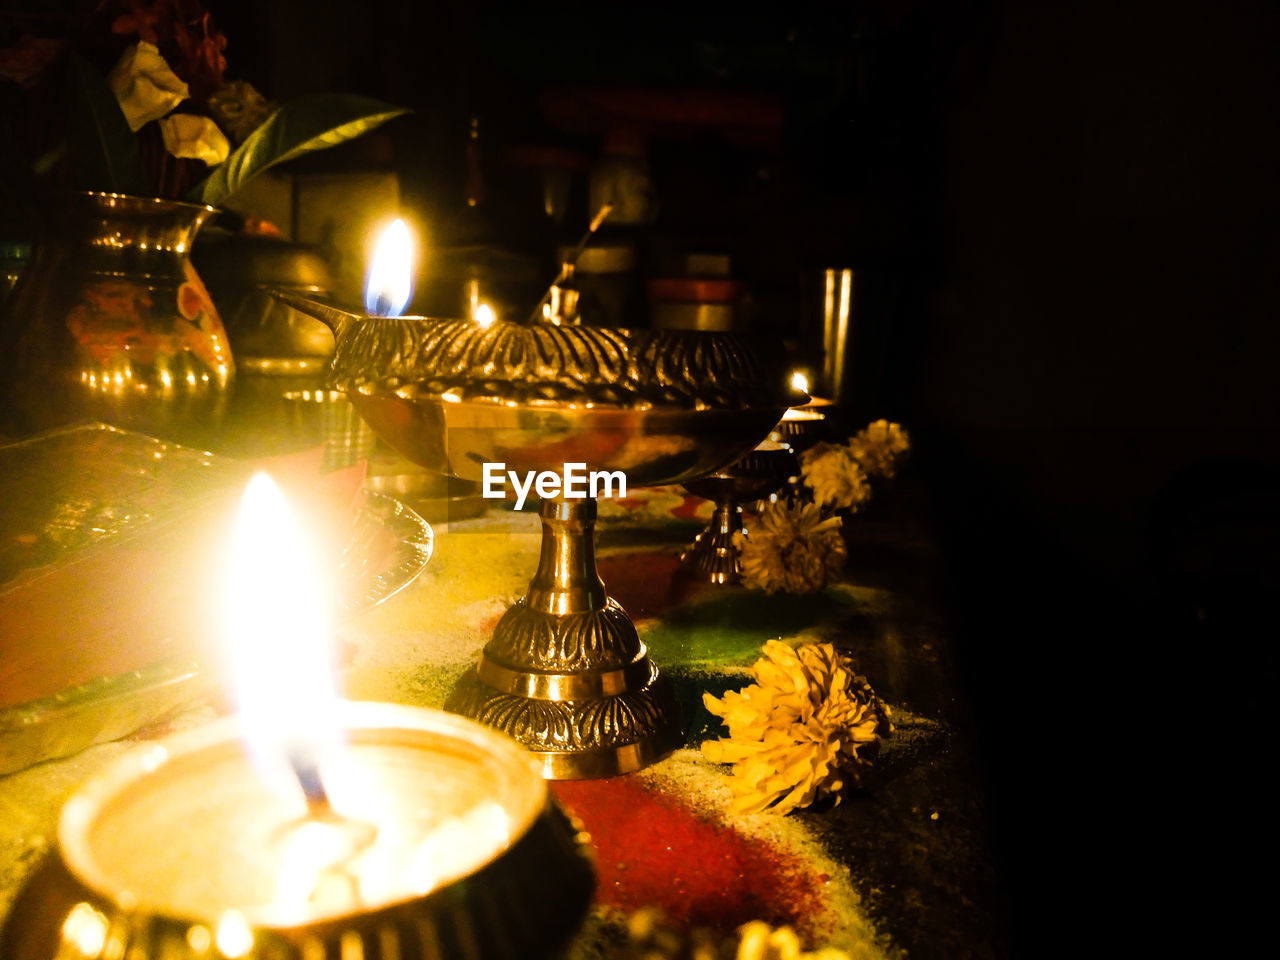 burning, flame, illuminated, fire, heat - temperature, candle, fire - natural phenomenon, no people, indoors, glowing, lighting equipment, close-up, religion, night, nature, belief, table, spirituality, selective focus, oil lamp, dark, electric lamp, tea light, altar